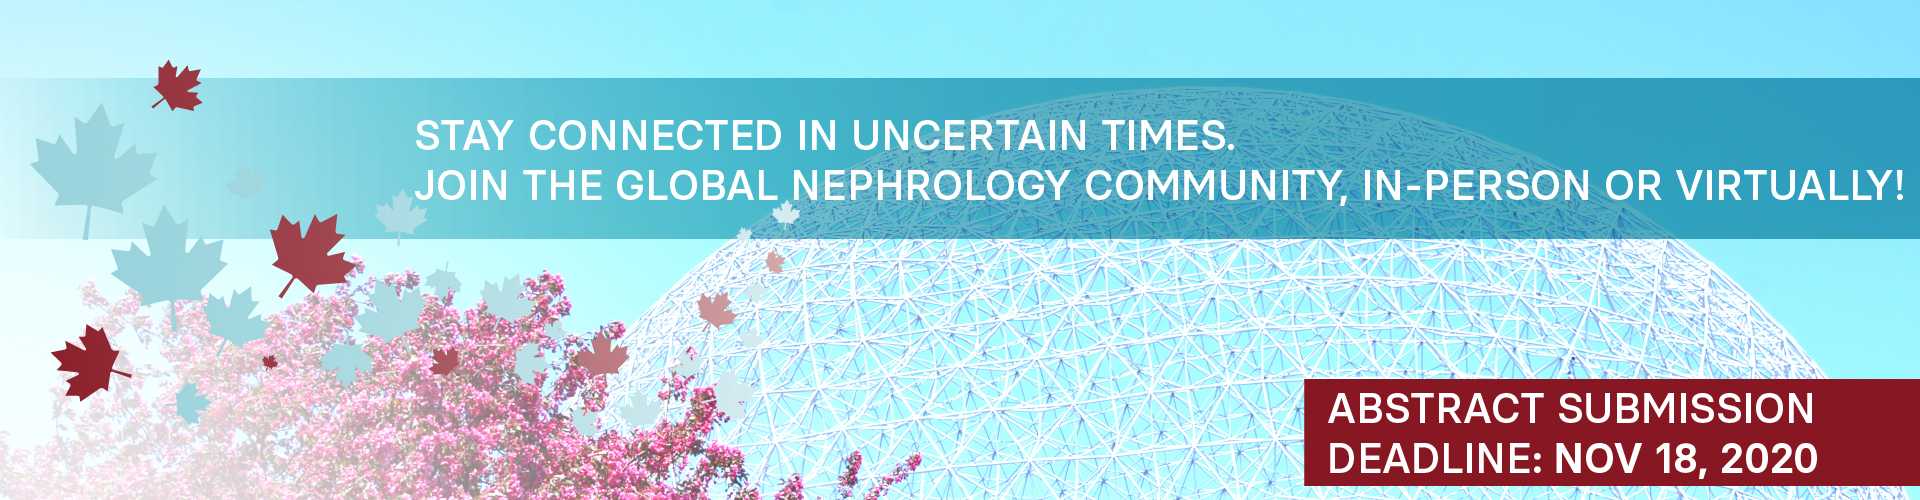 Join the global nephrology community, in-person or virtually, at the World Congress of Nephrology 2021